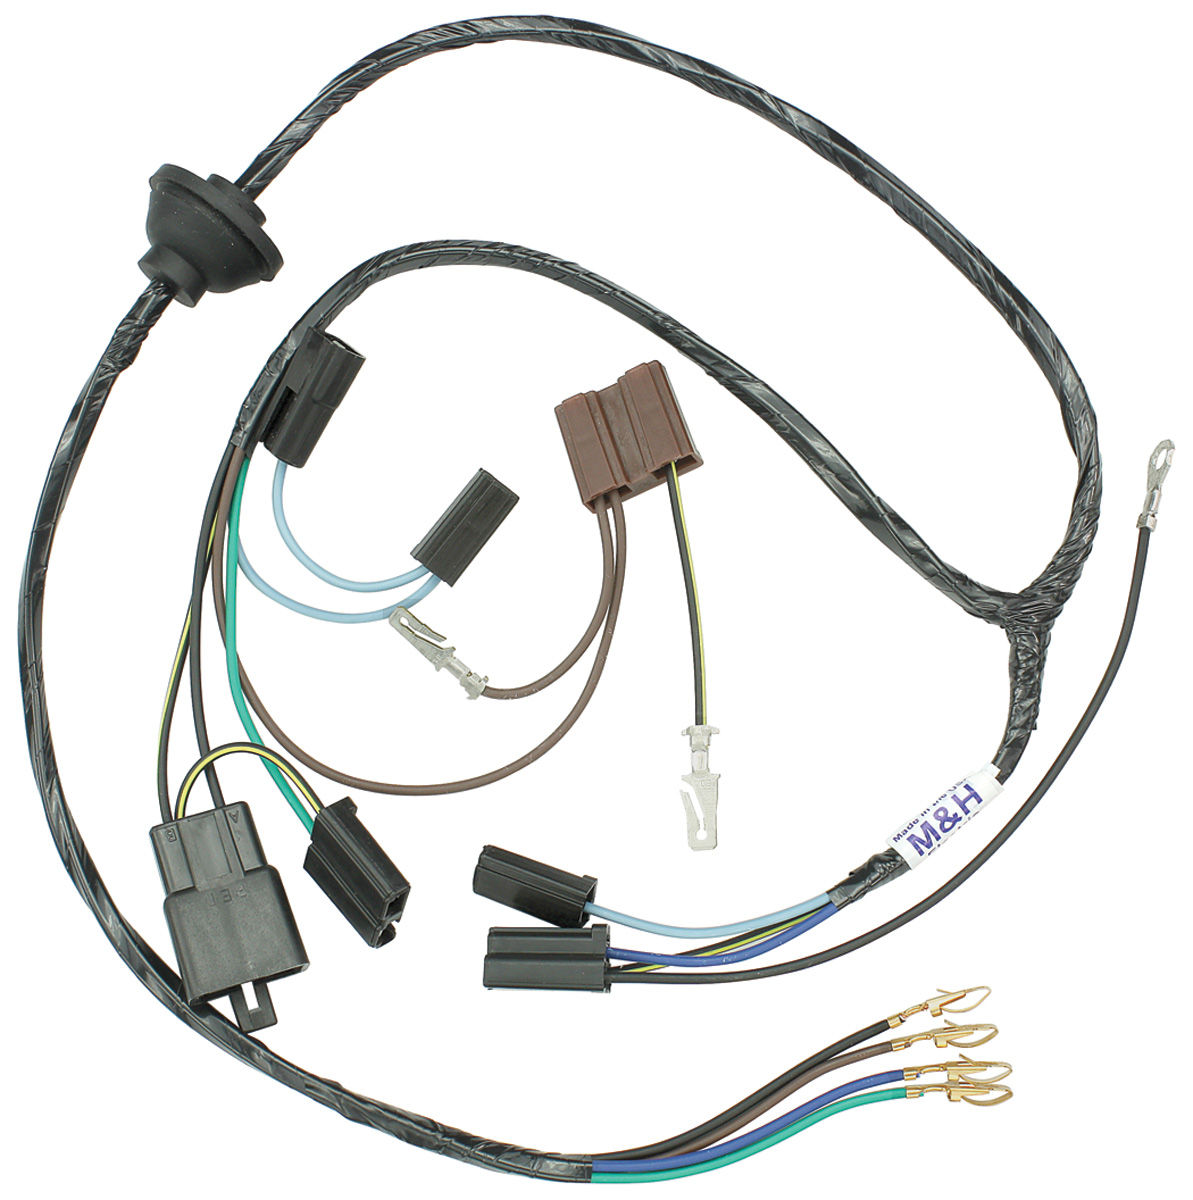 1970 chevelle ignition switch wiring diagram goodman 4 ton heat pump for with gauges get free